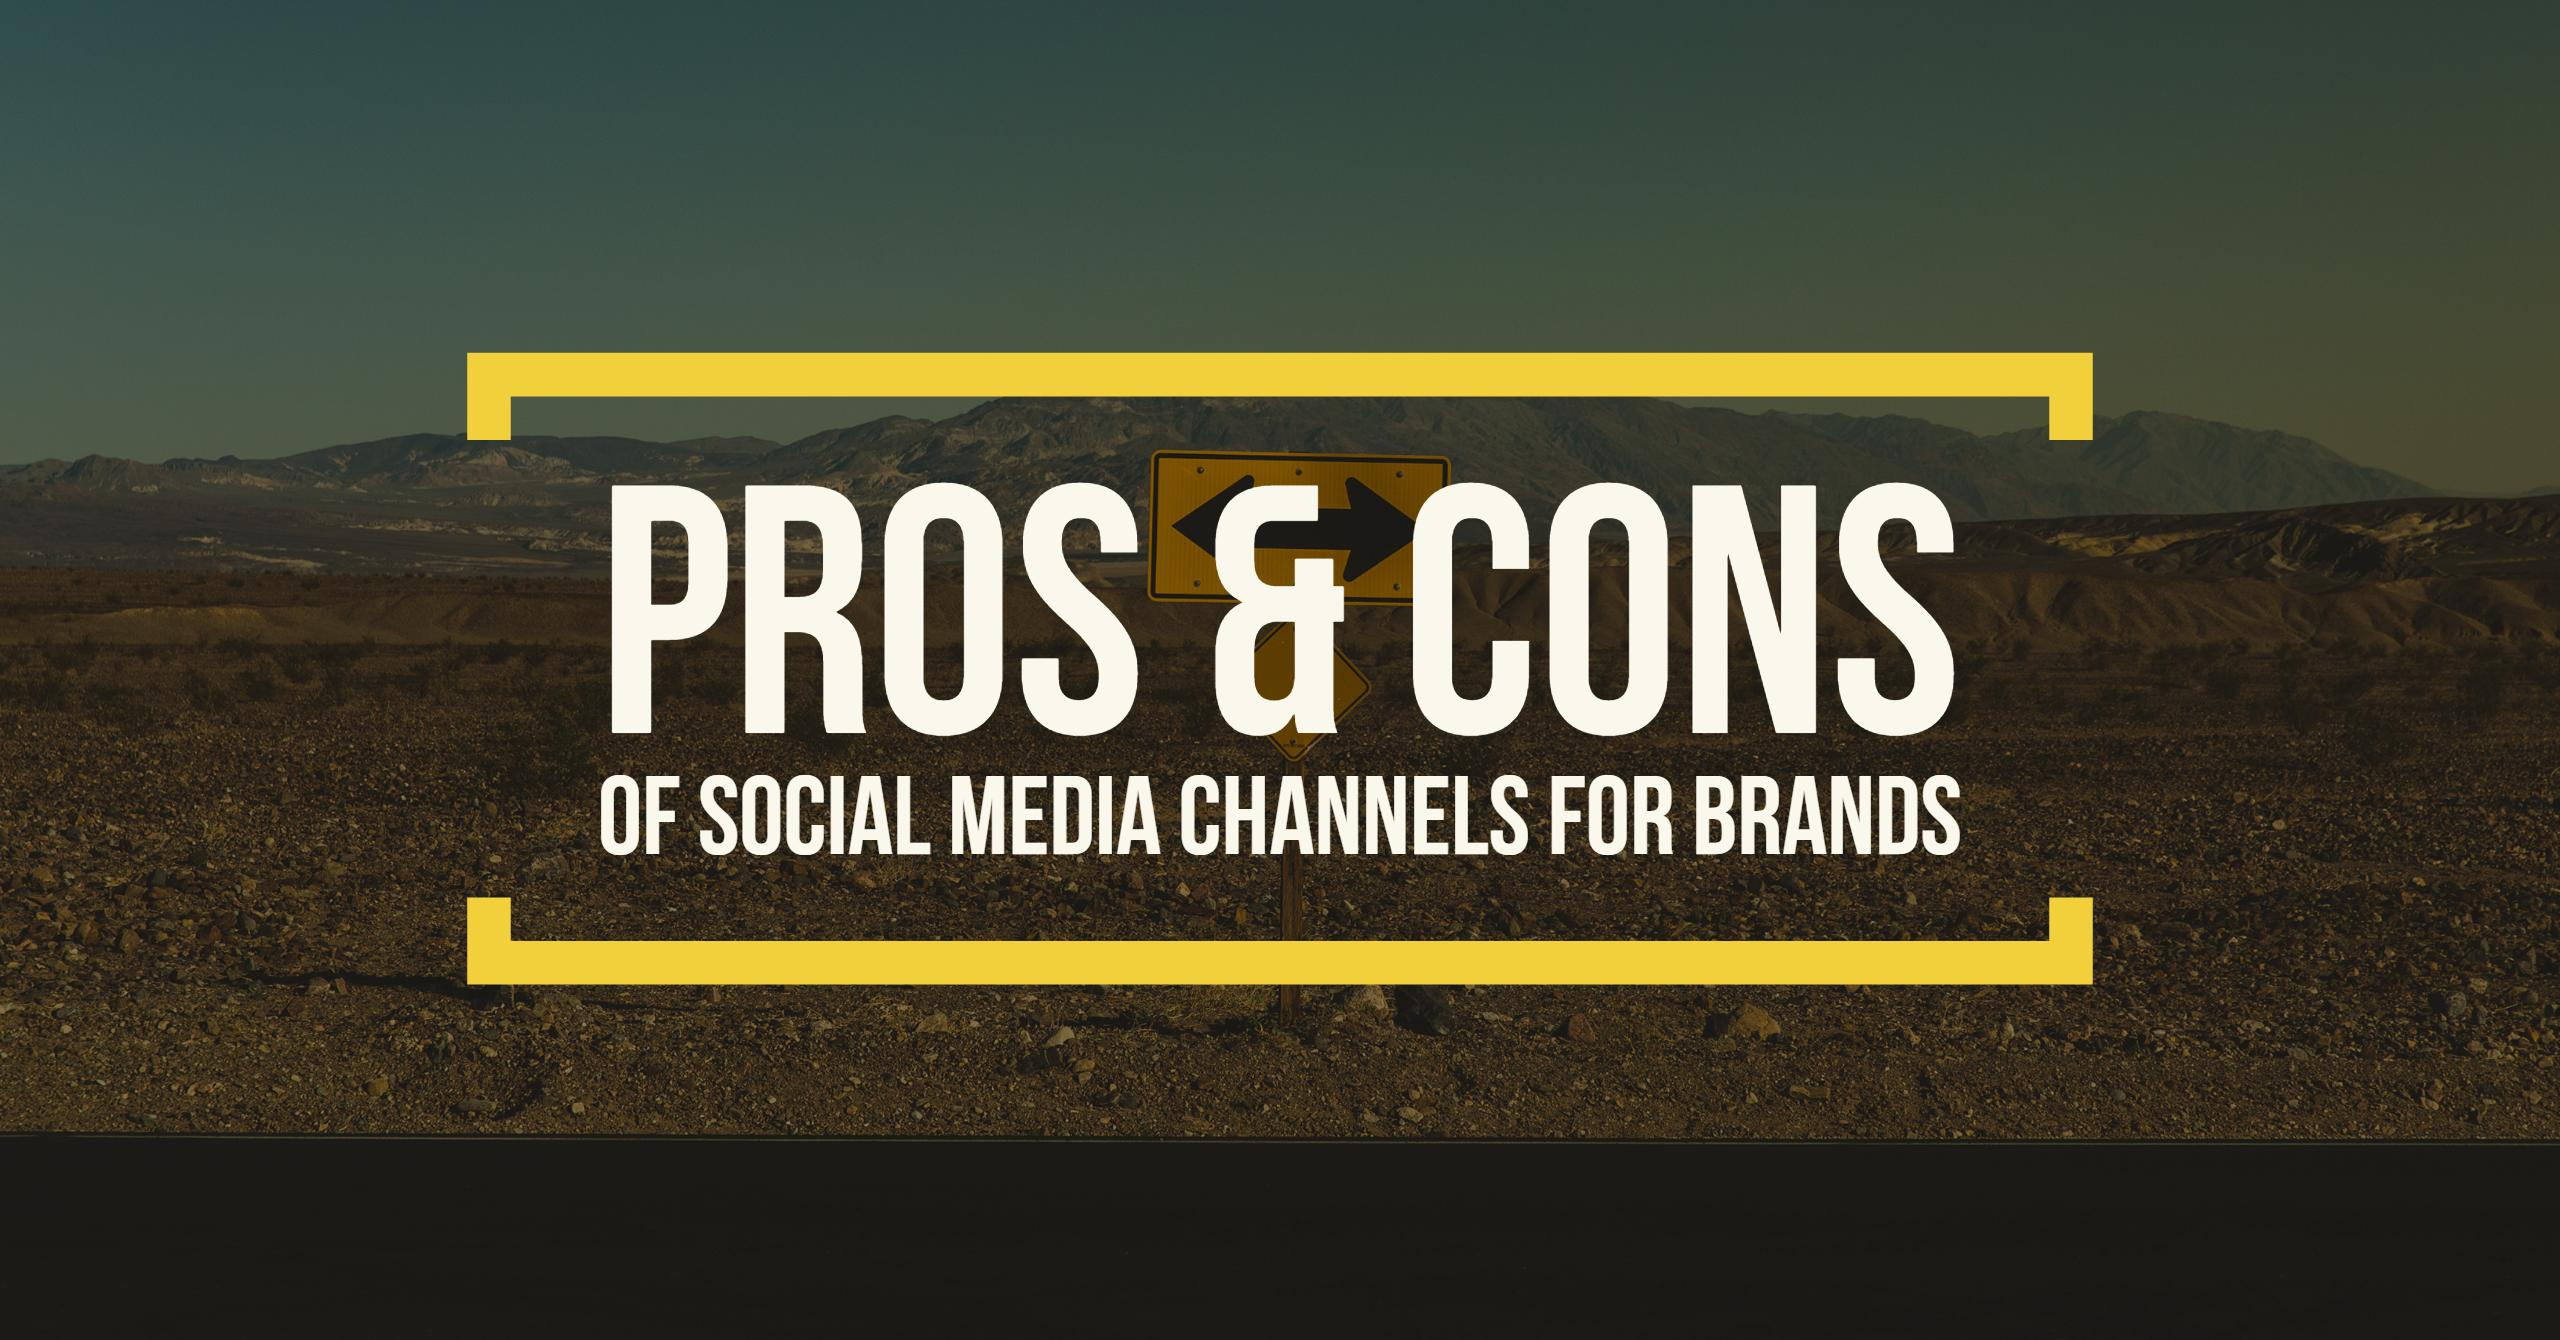 Social Media Channels for Brands